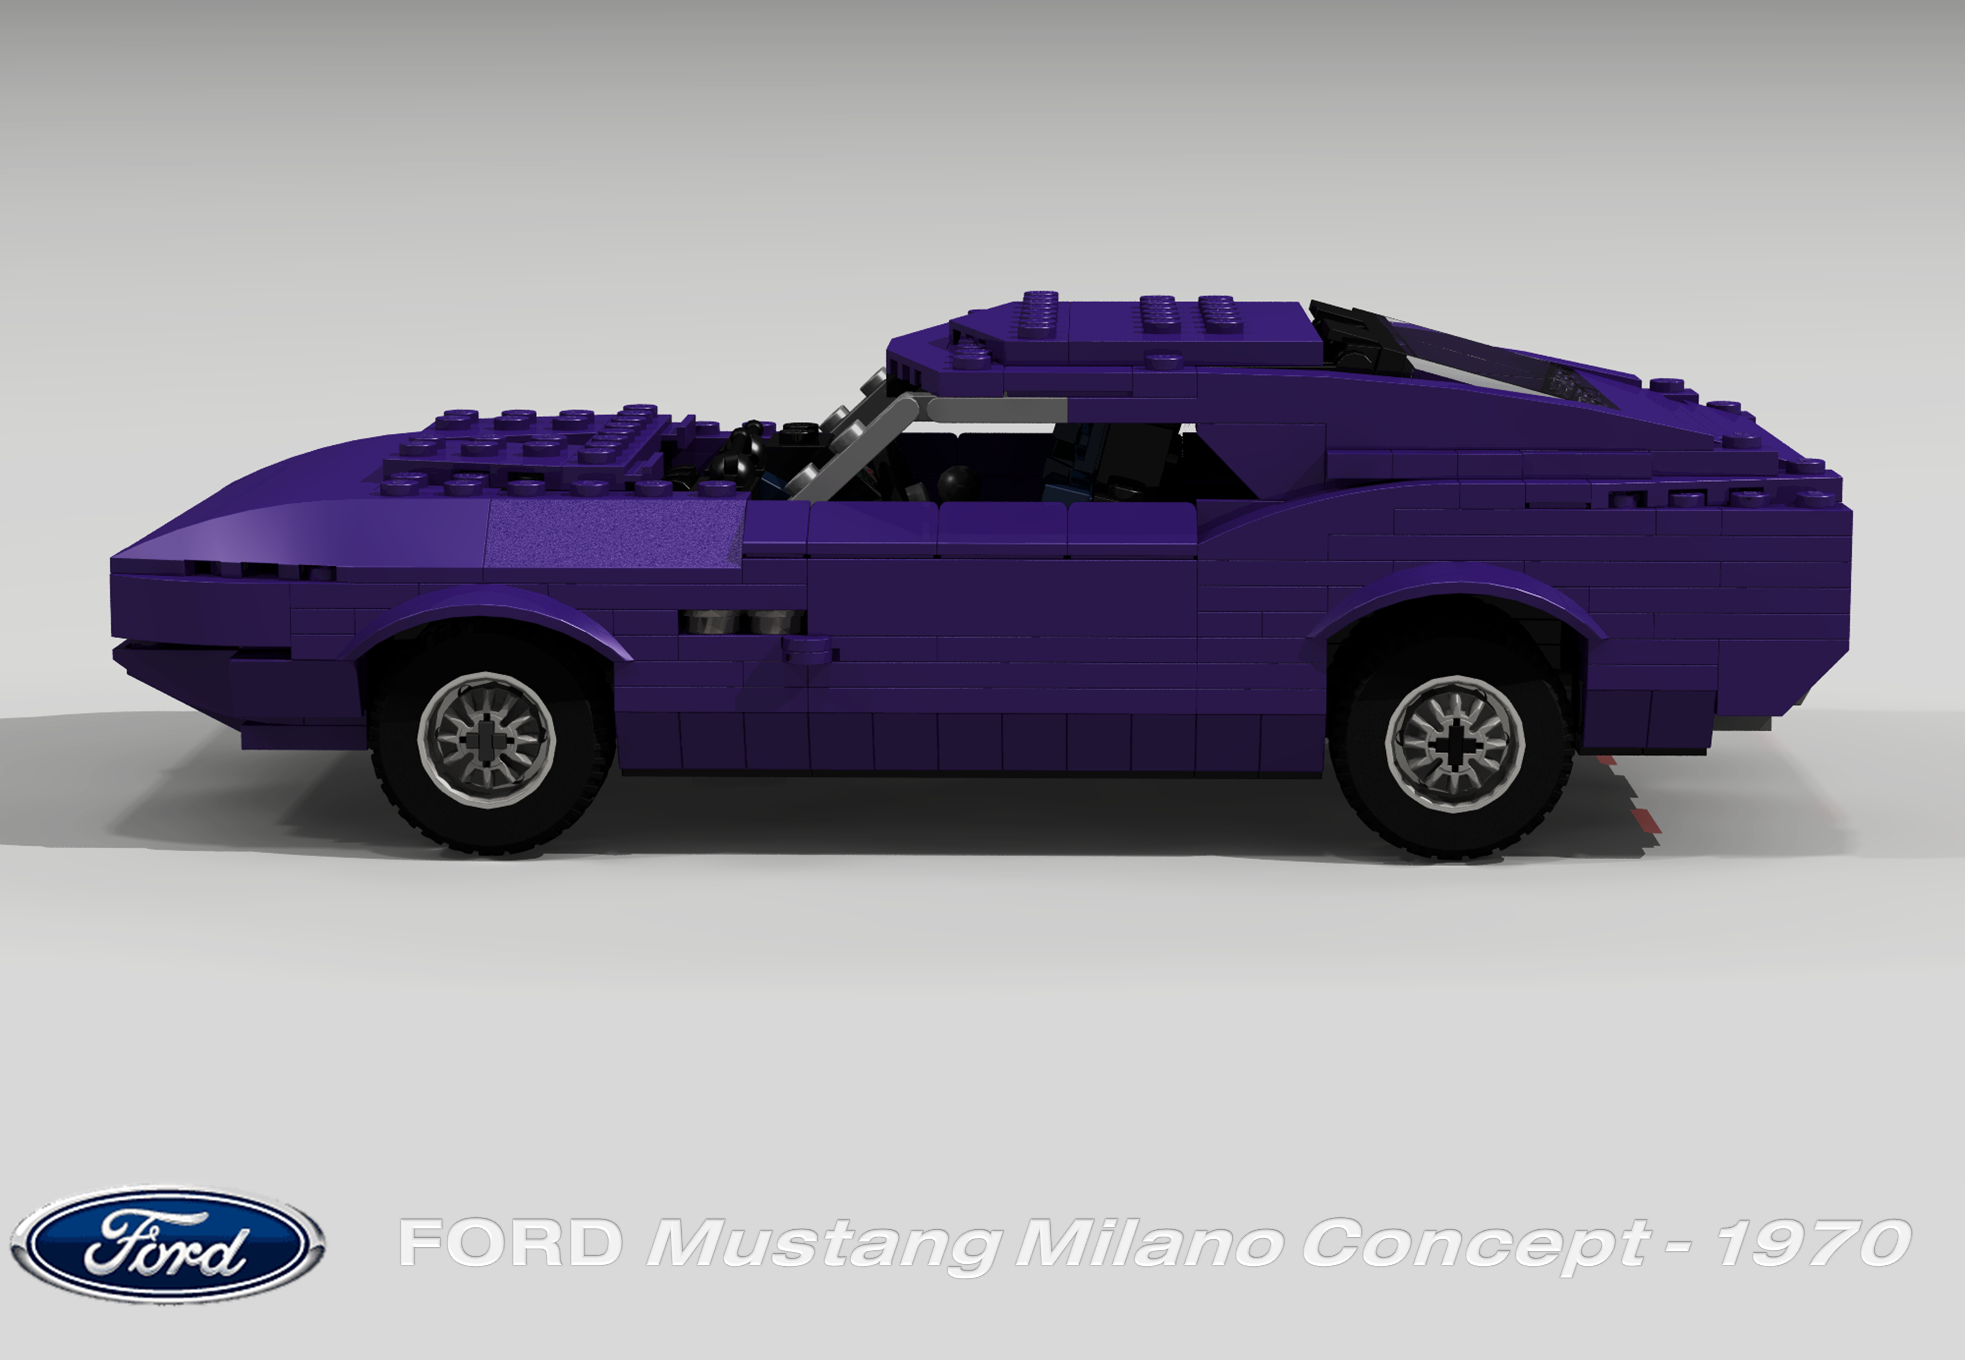 ford_mustang_milano_concept_1970_03.png